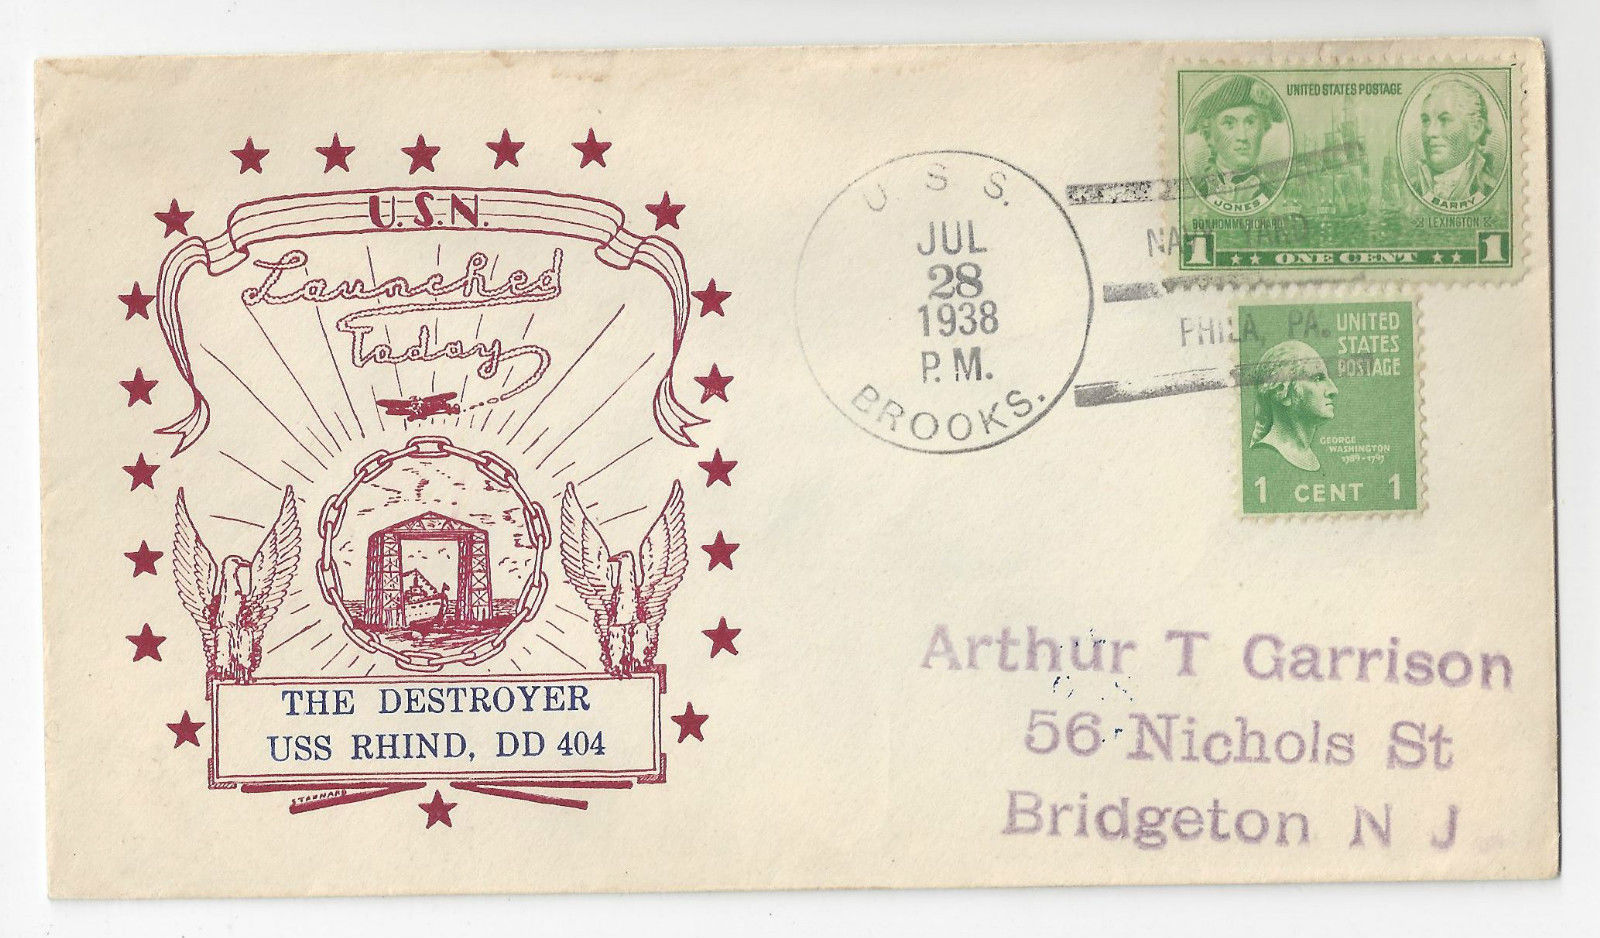 USS Brooks USS Rhind DD-404 Launch Cover 1938 Horton Cachet Navy Yard Phila PA